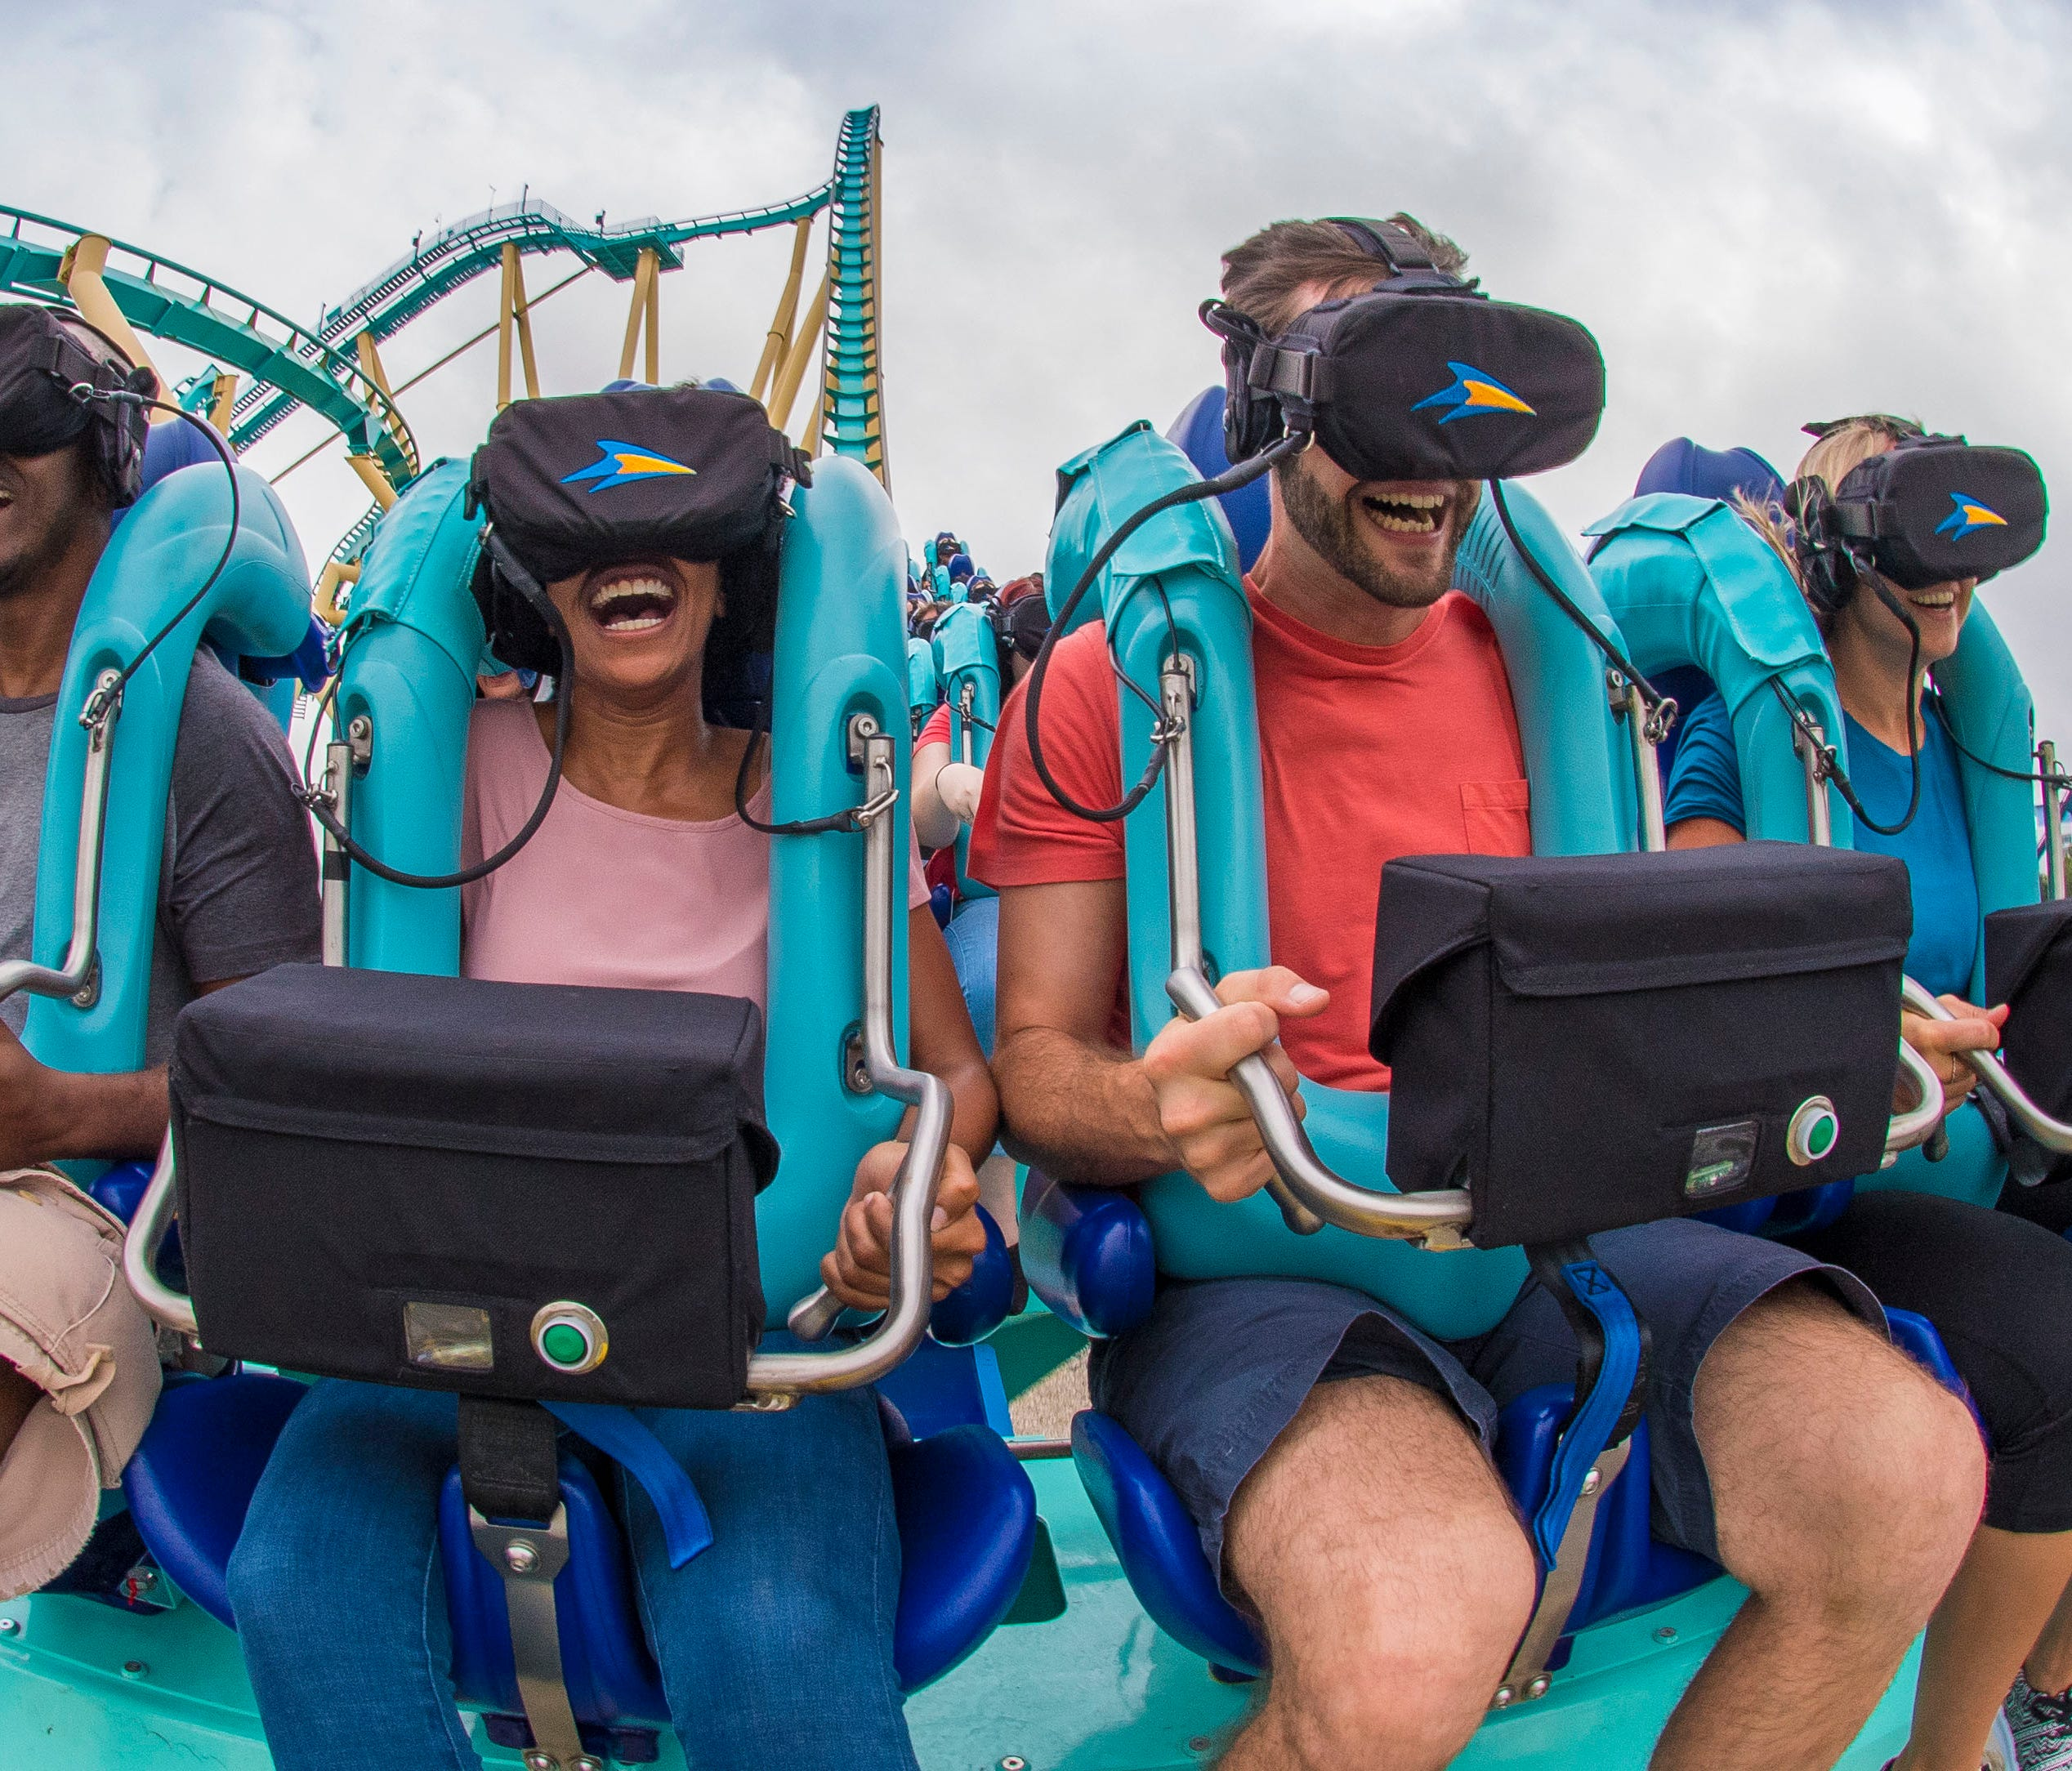 Virtual reality has so far mostly been used as an overlay on existing rides. Due to limitations in factors such as image quality, gear portability, and glitchy performance, it remains largely a novelty at parks.